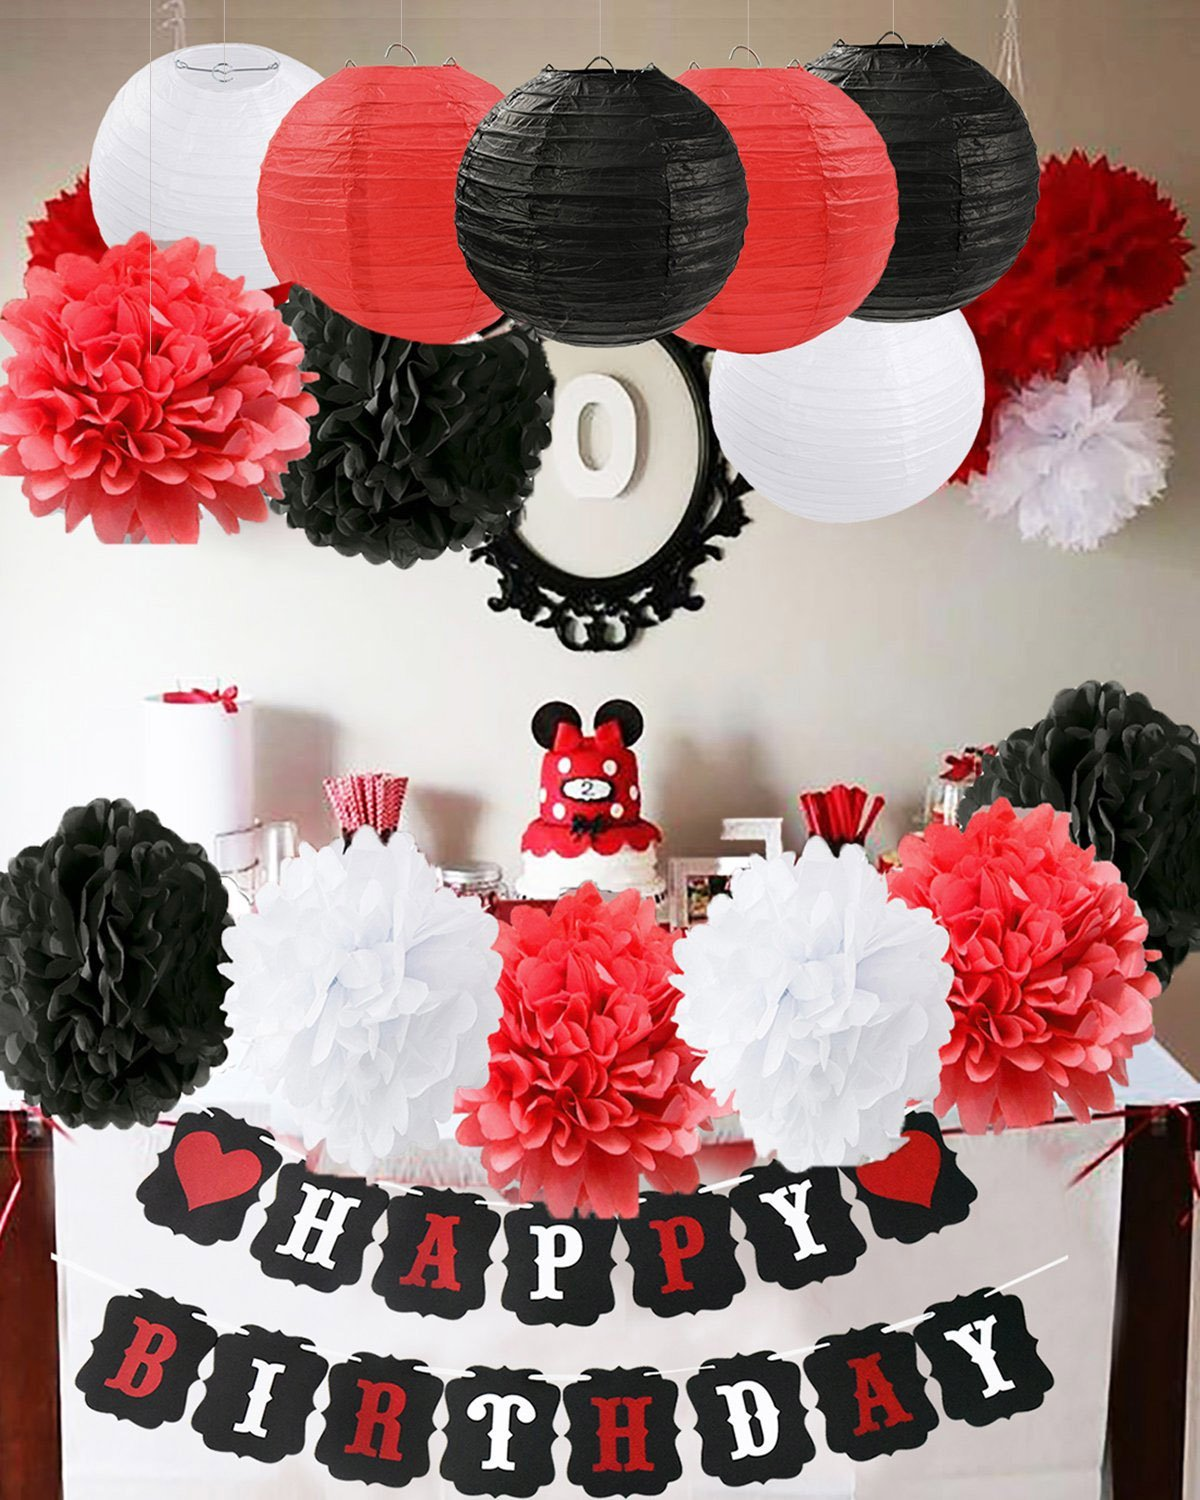 Furuix mickey mouse birthday party decorations white red black birthday party decorations minnie mouse party supplies tissue paper pom pom flowers paper